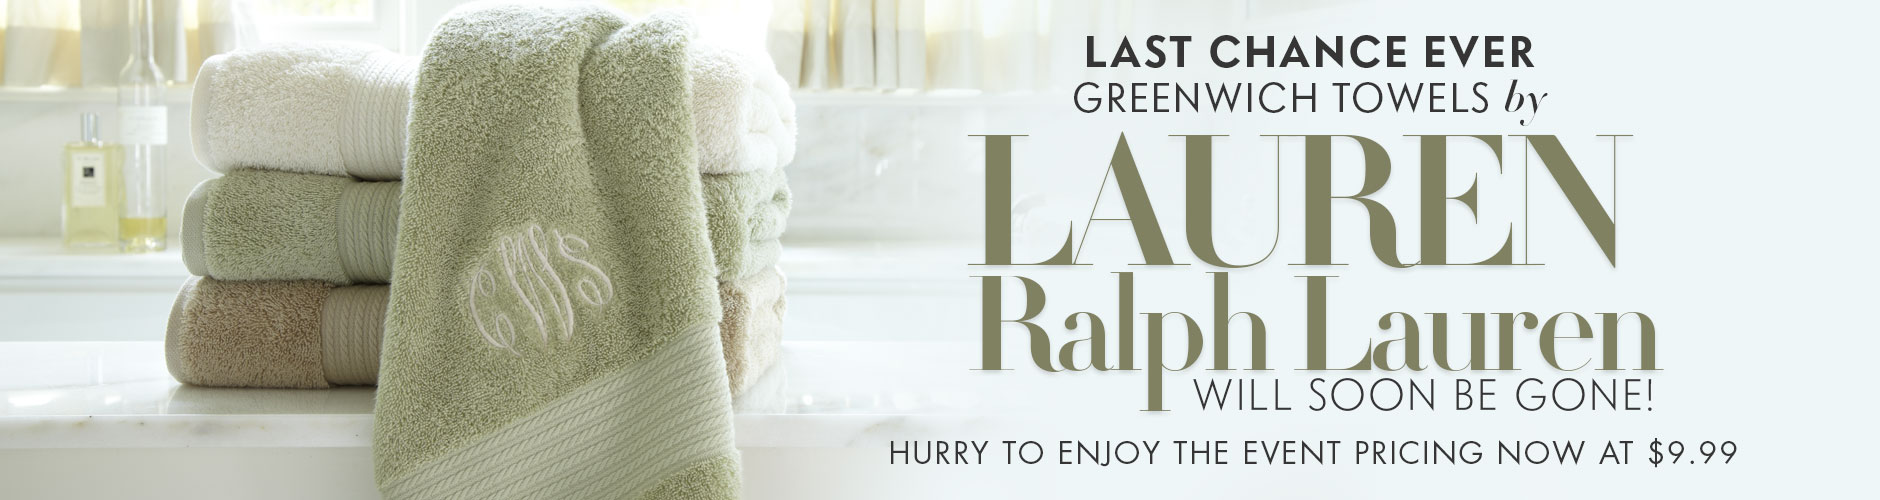 $9.99 Greenwich Towels by LAUREN Ralph Lauren